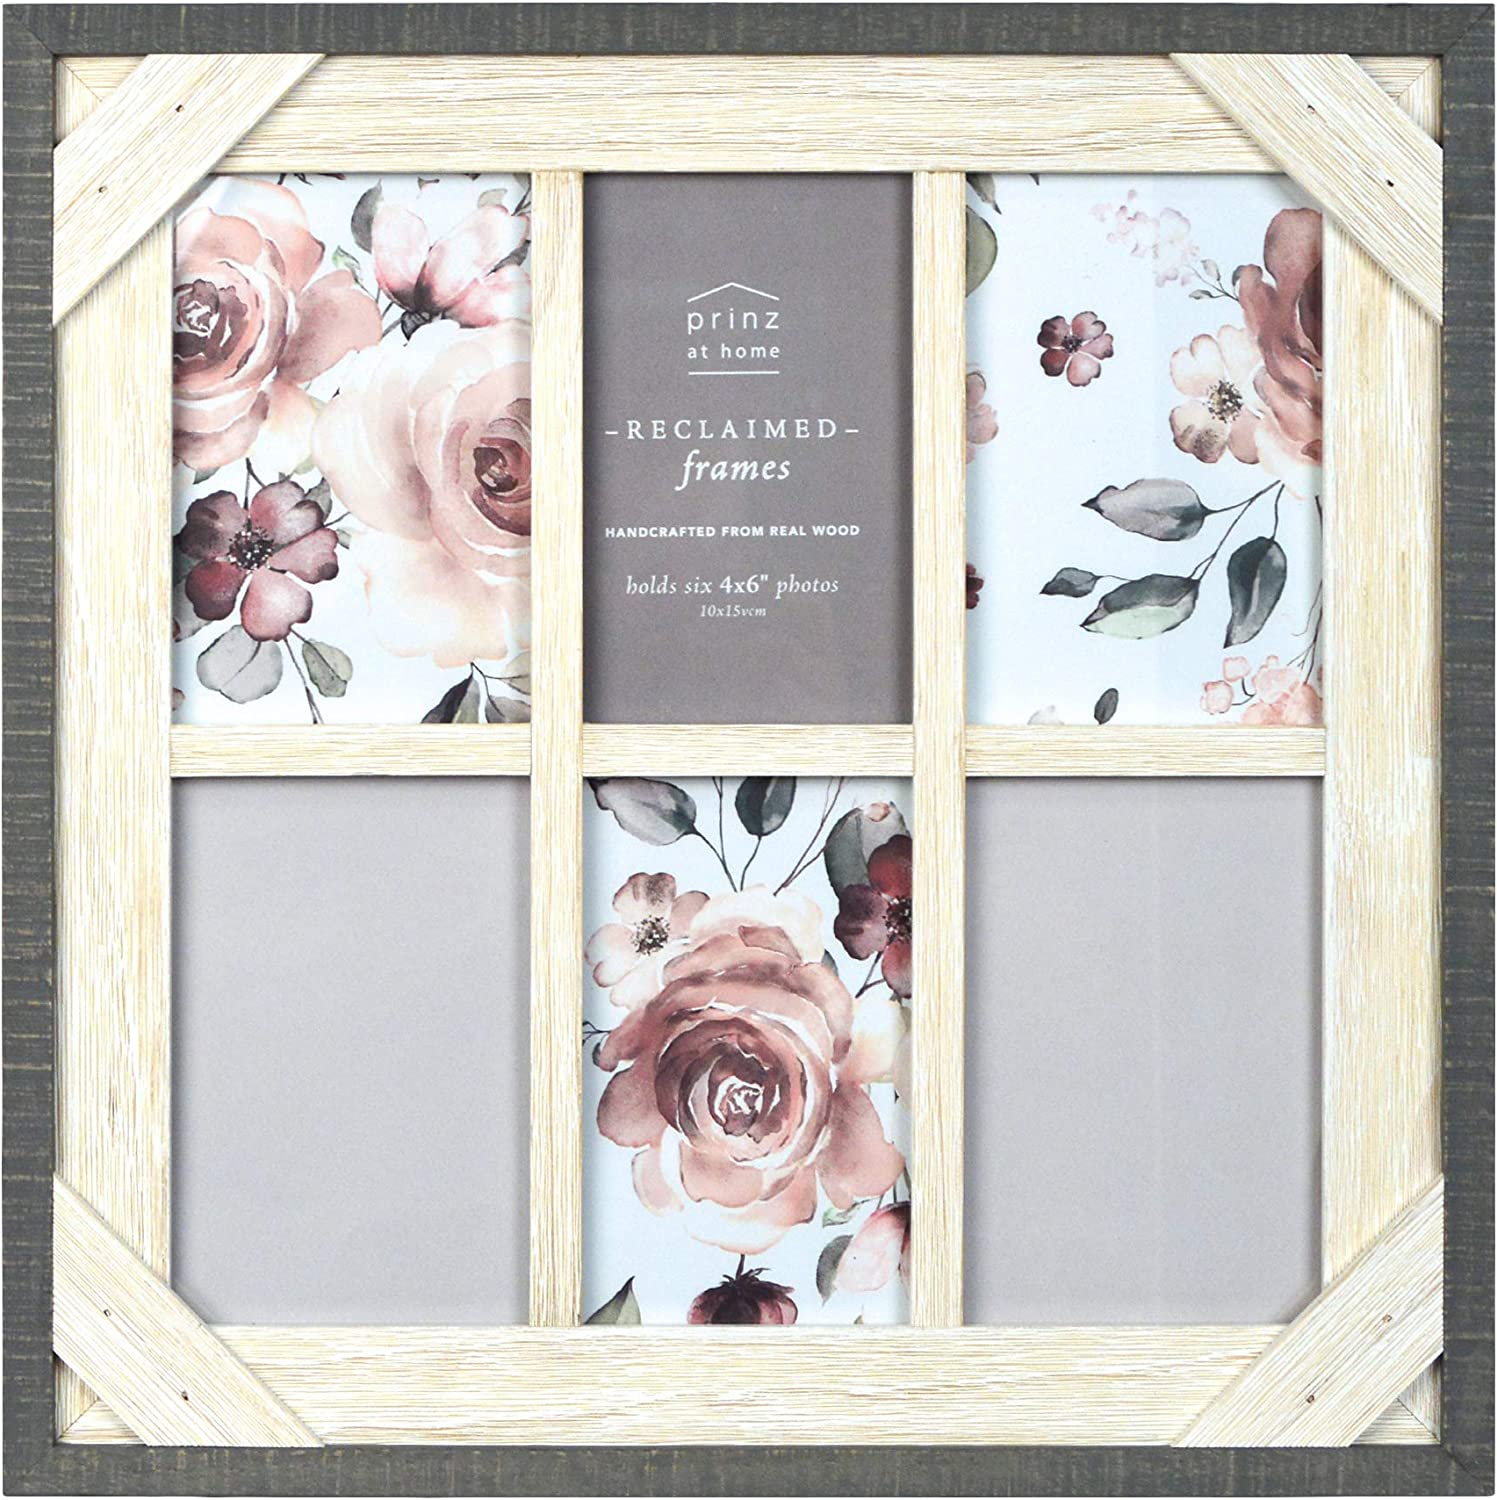 Amazon Com Prinz Reclaimed 14 8 X 14 8 Crosshatch Wood Collage Picture Frame 14 8x14 8 Gray White